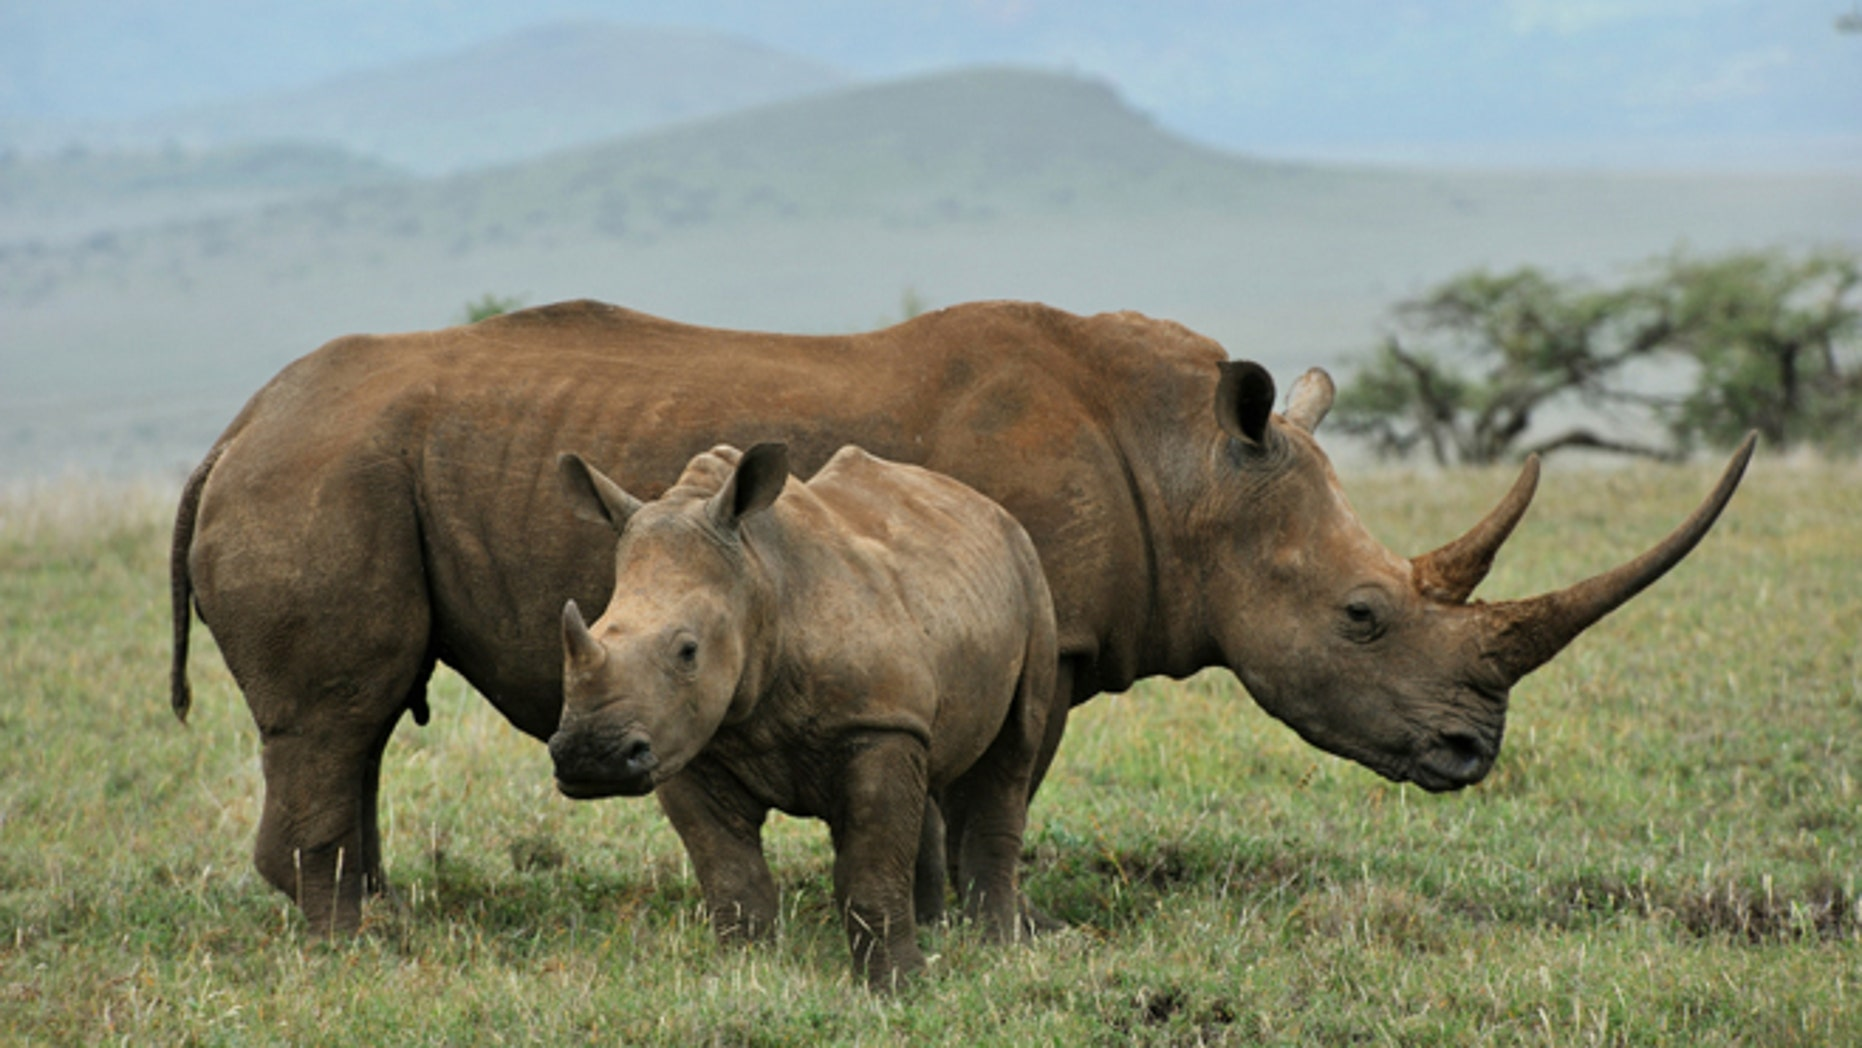 Rhino horn is more valuable than cocaine on the black market.